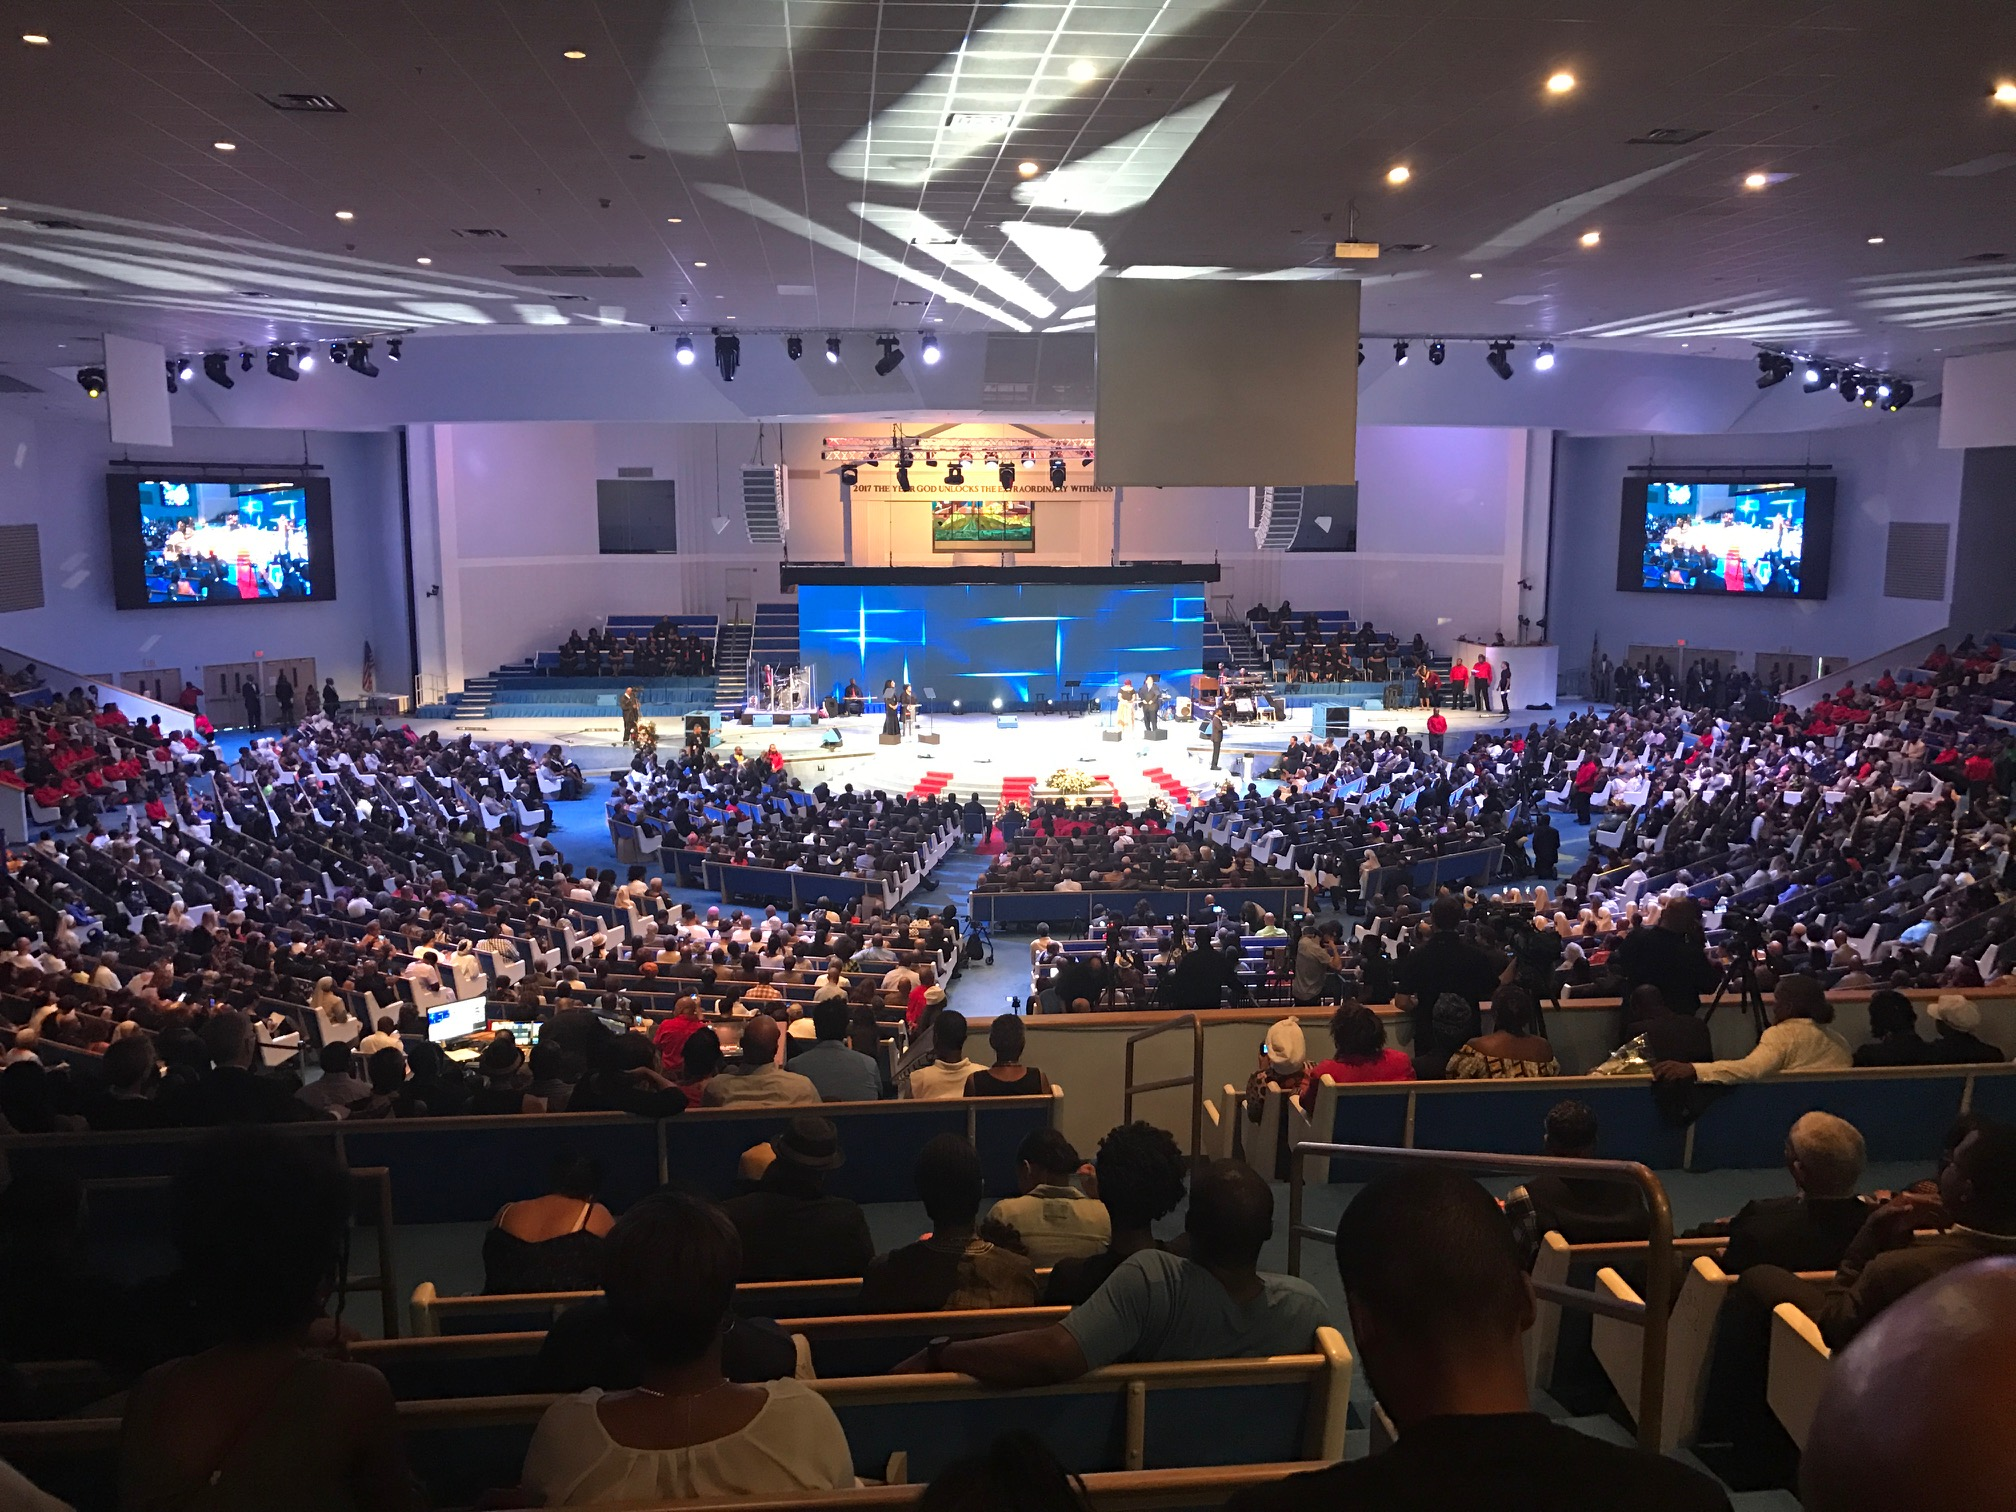 As many as 8,000 people attended services for Dick Gregory Saturday at City of Praise Family Ministries in Landover, Md. (Photos by Hamil R. Harris)